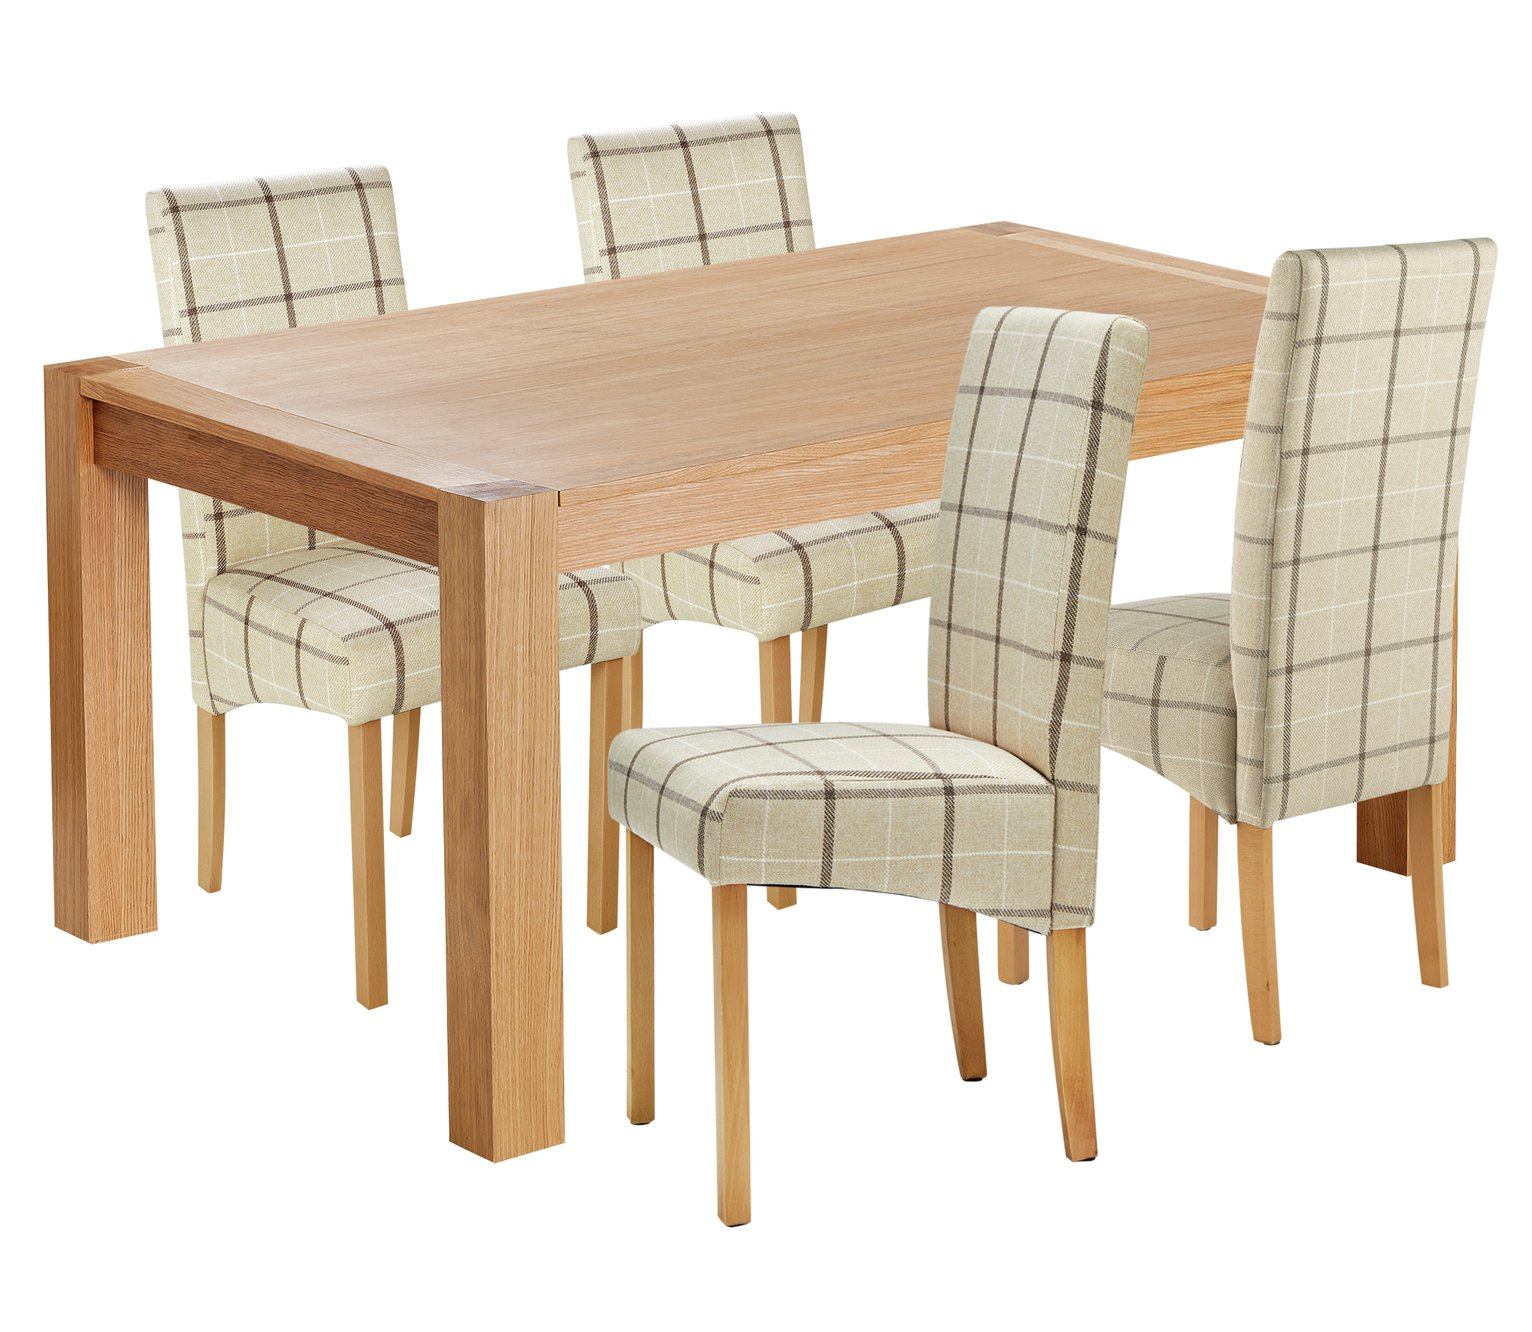 Argos Home Alston Extendable Table & 4 Chairs - Cream Chk